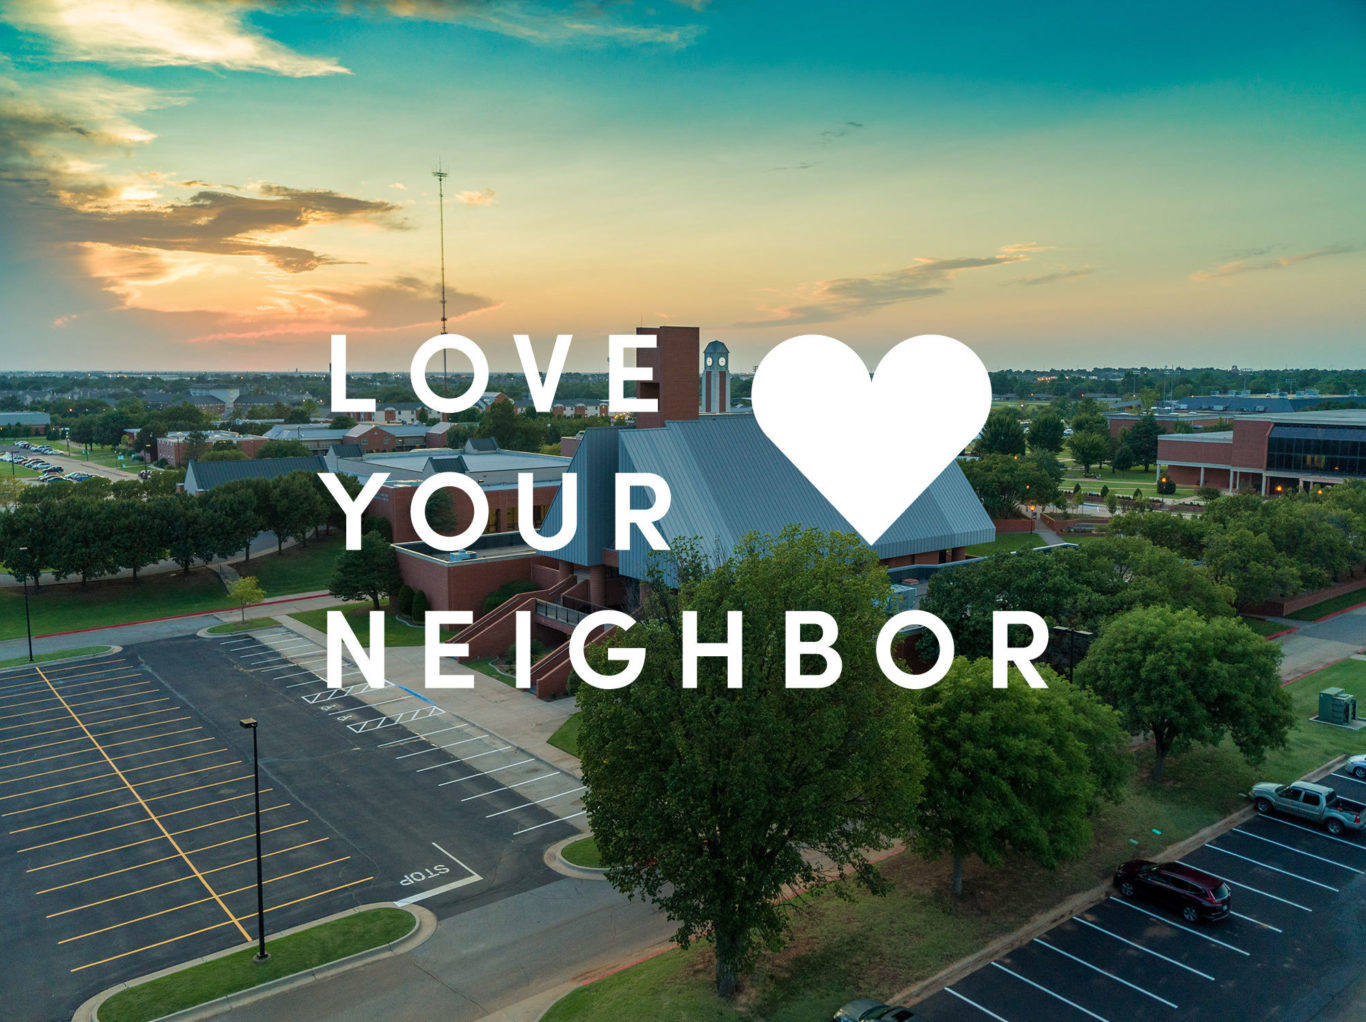 Love your neighbor drone